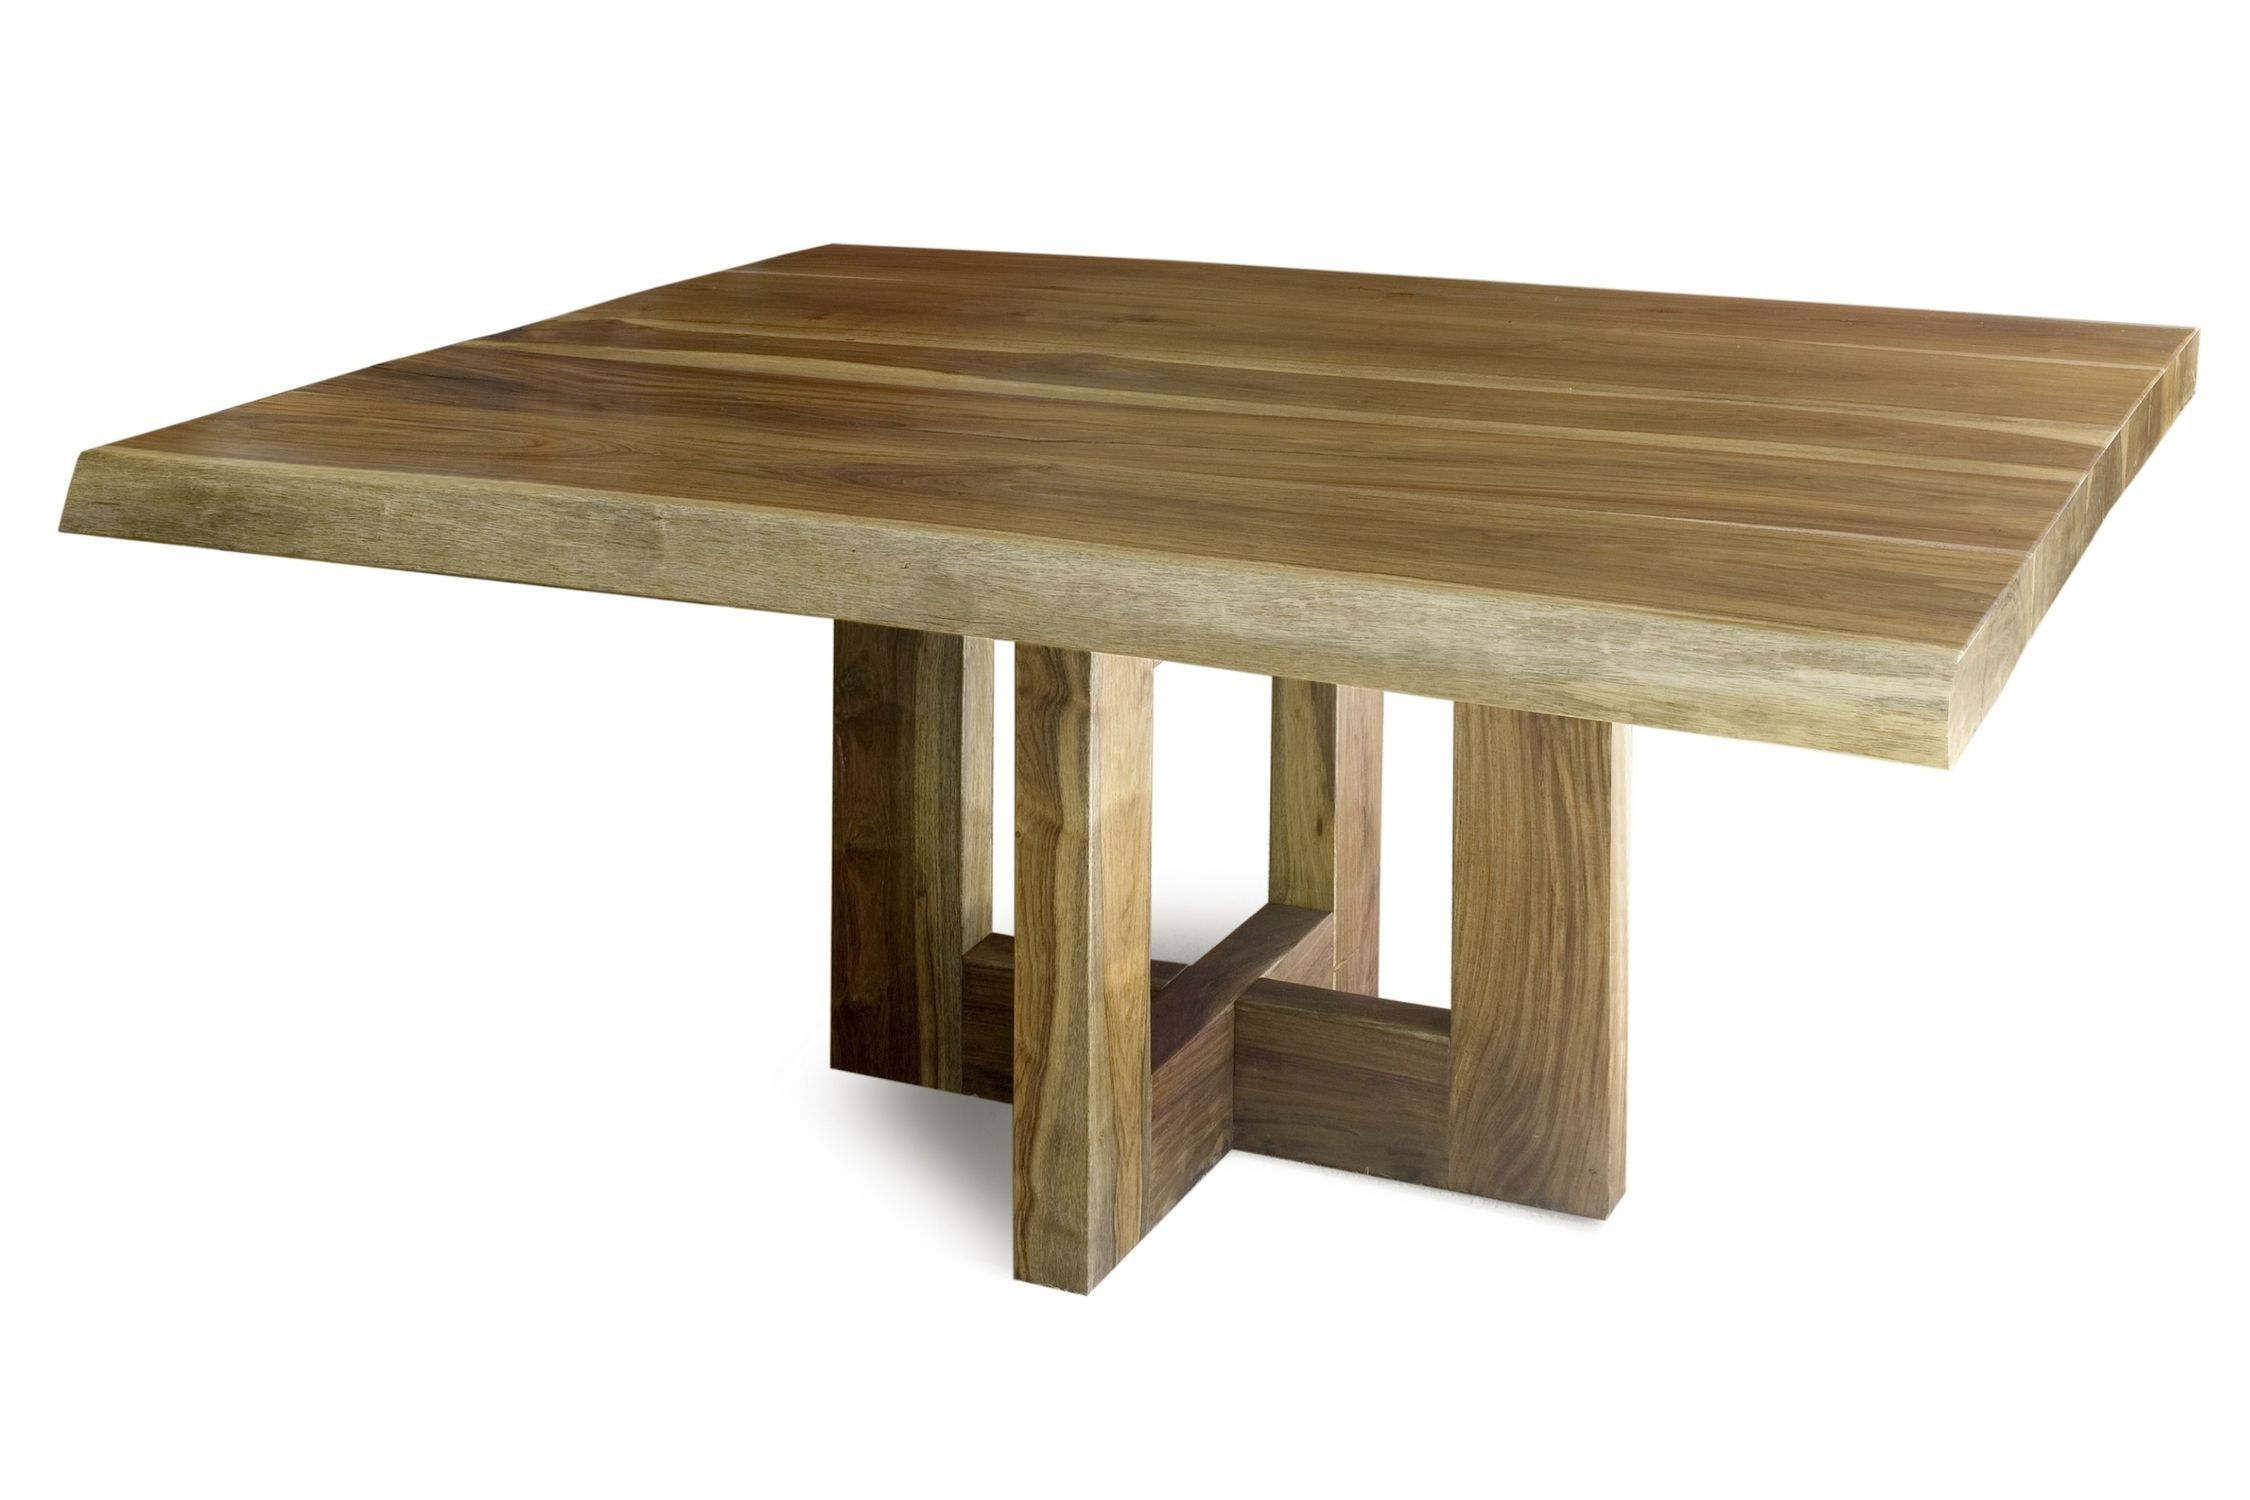 Contemporary rectangle unfinished reclaimed wood table for for Contemporary dining table designs